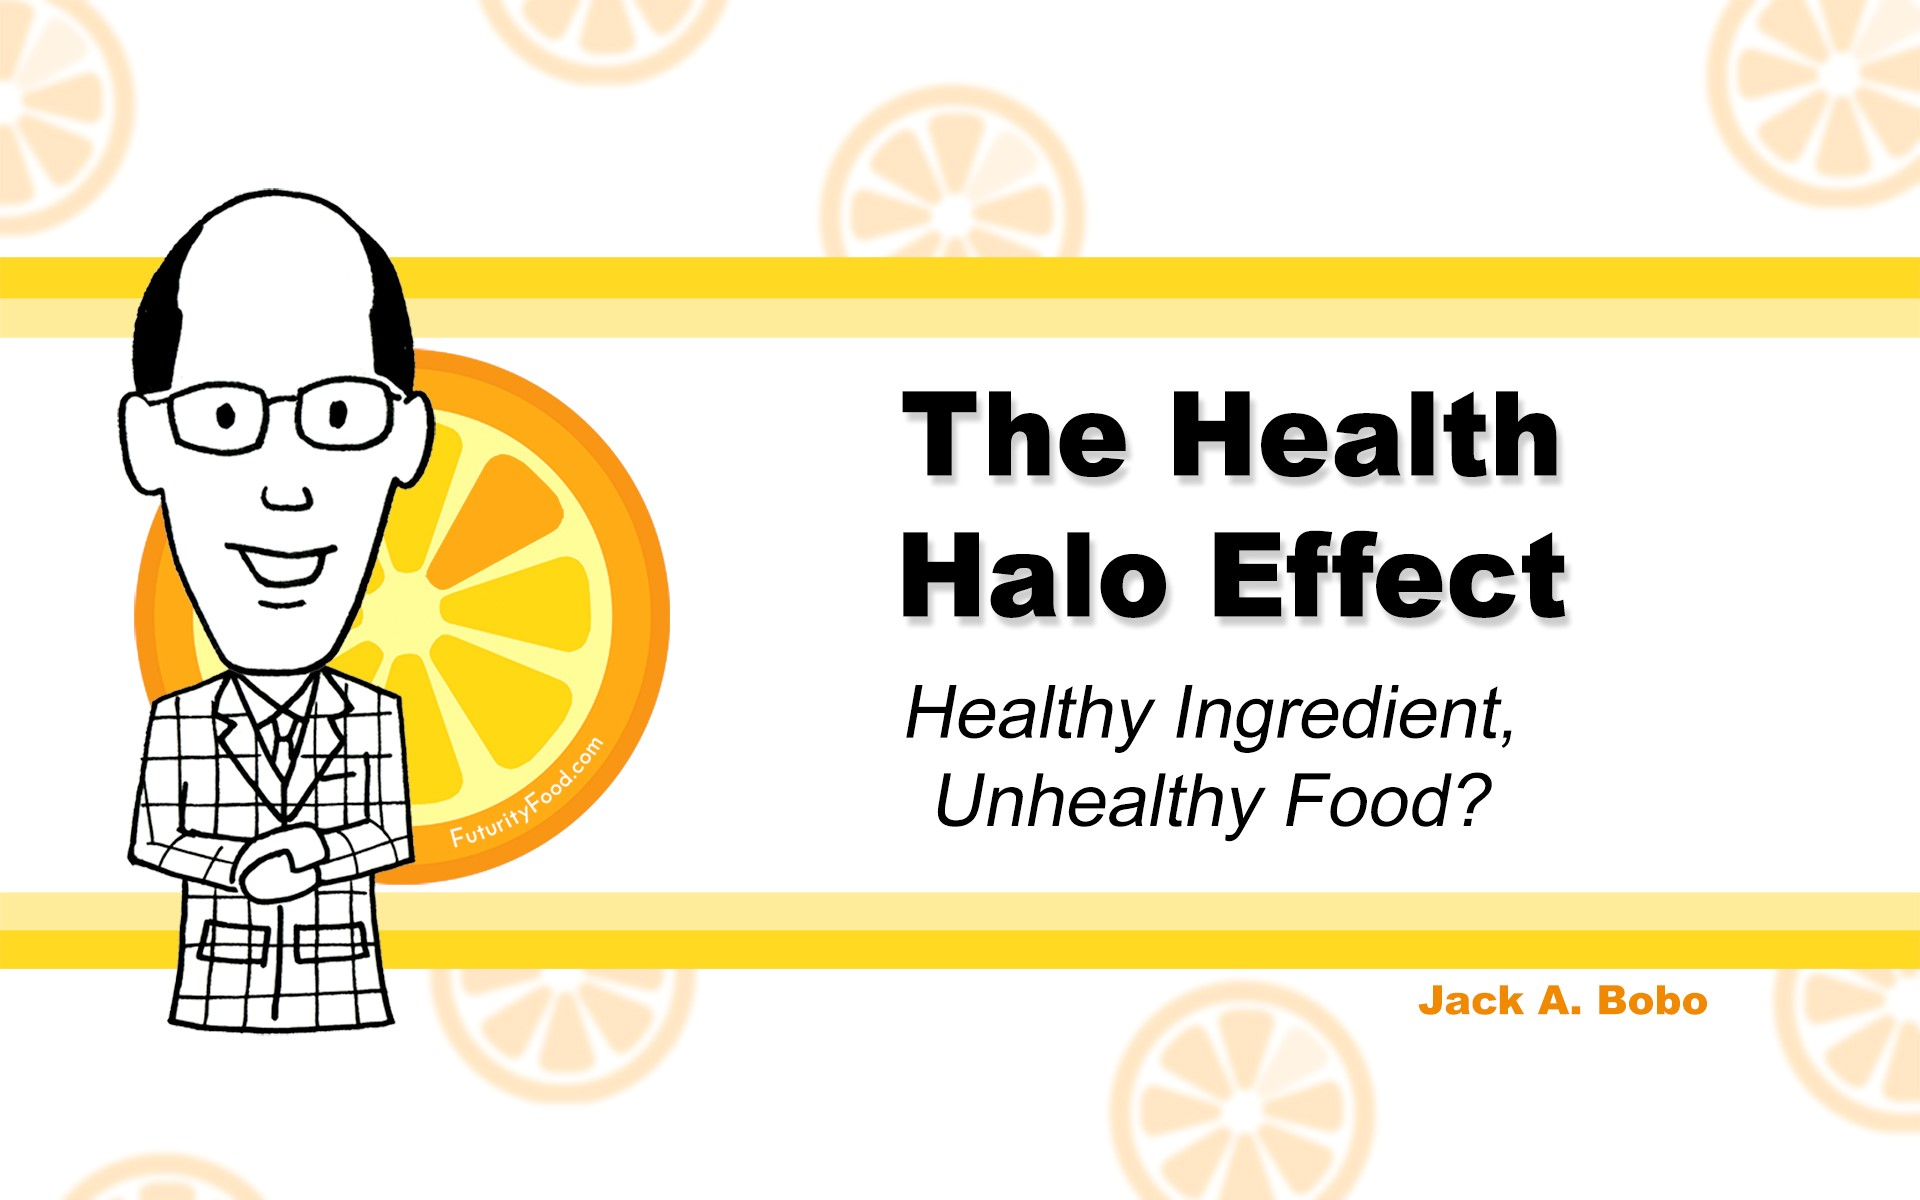 The Health Halo Effect